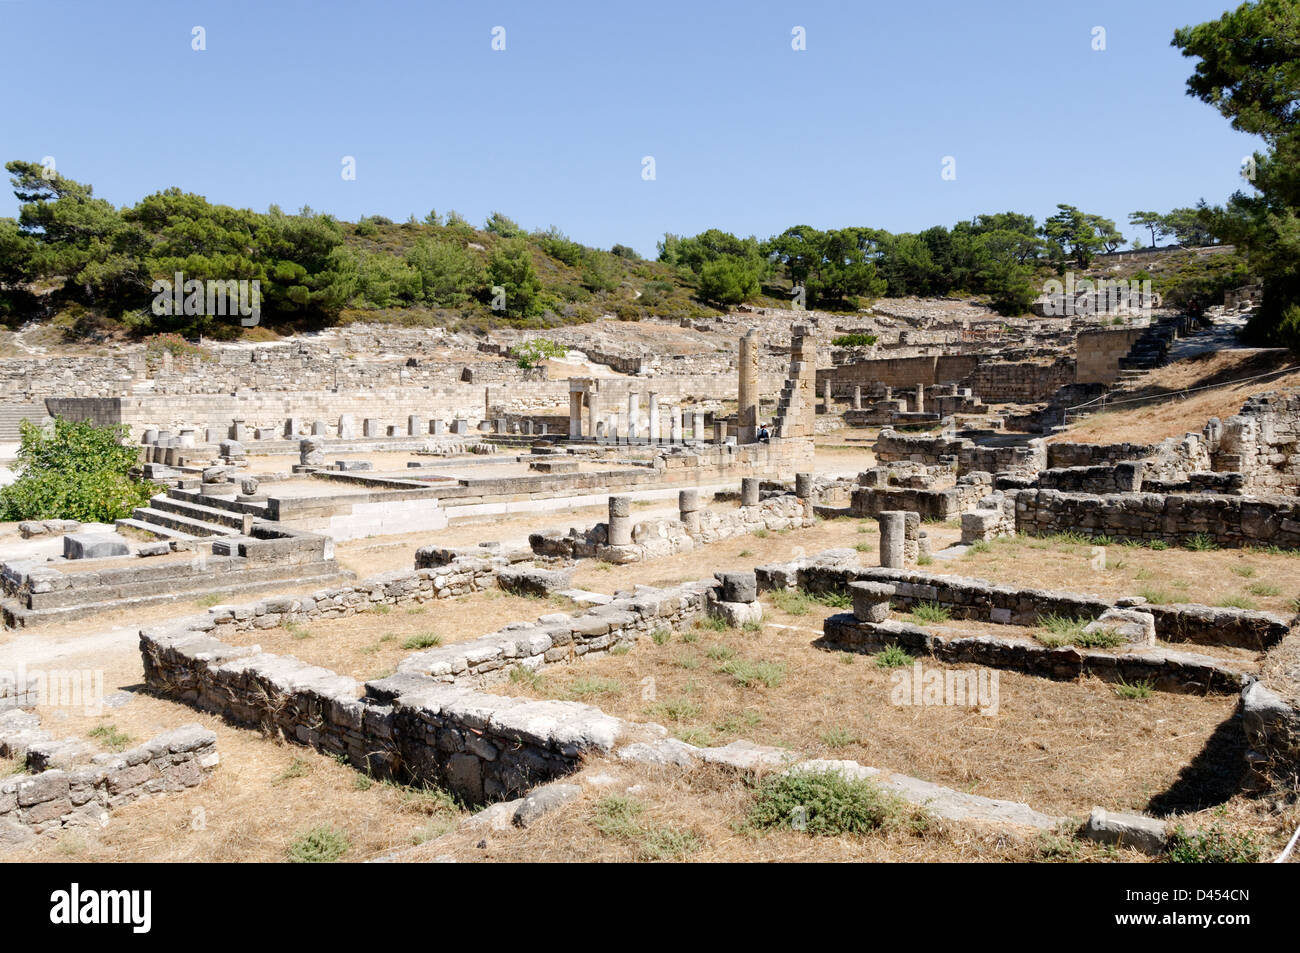 Rhodes. Greece. View of the archaeological site of Ancient Kameiros, set idyllically on the west coast of Rhodes - Stock Image